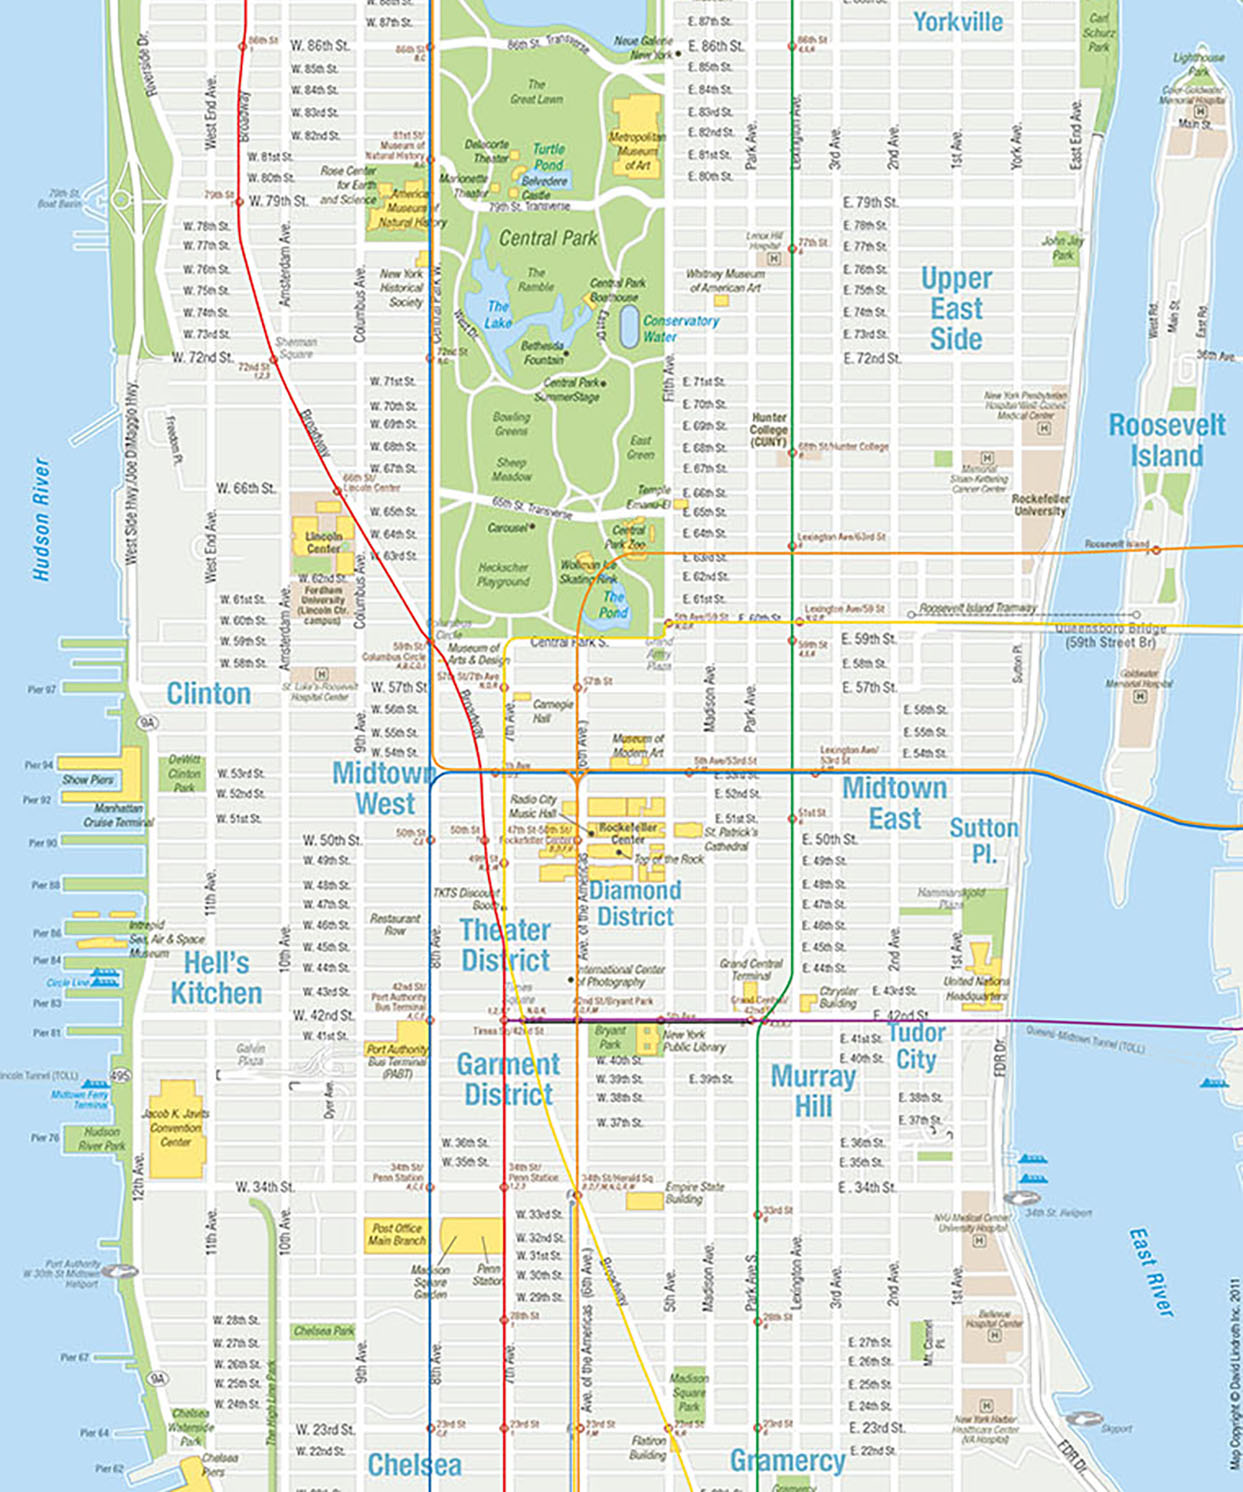 MANHATTAN TEAR-OFF MAPS (2011)    These two maps (above and right) were distributed to information centers in pad form.  Visitors could get directions from agents who could write instructions or tips on the map, tear off the sheet so the person could take it with them.